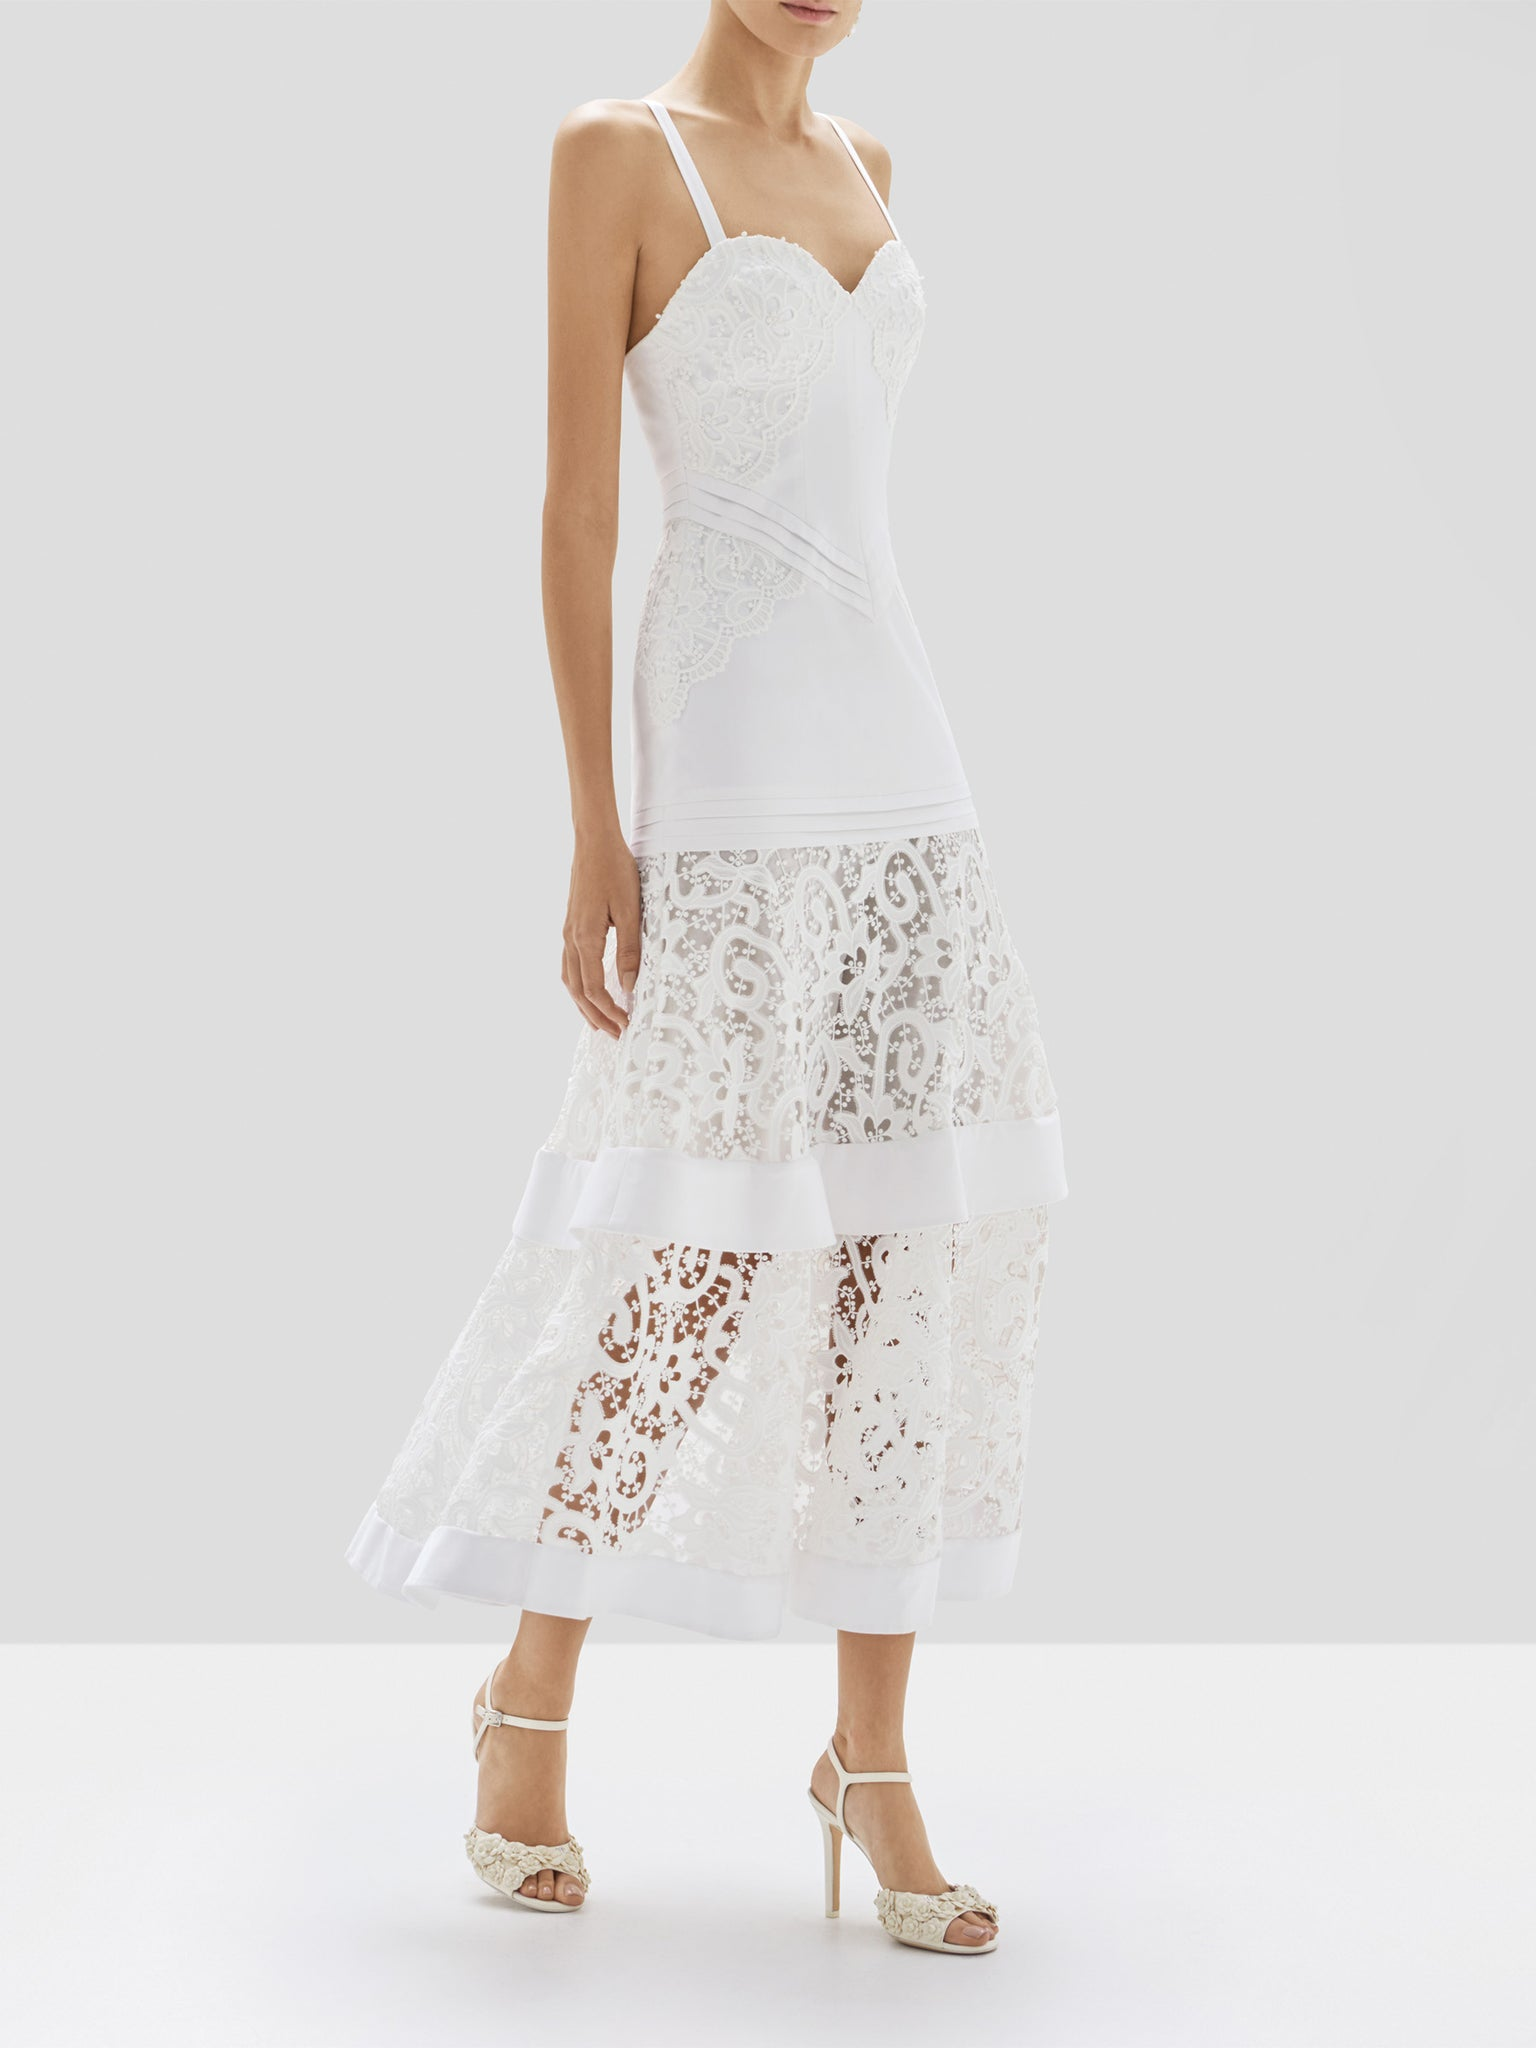 Alexis Harlowe Dress in White from Pre Spring 2020 Collection